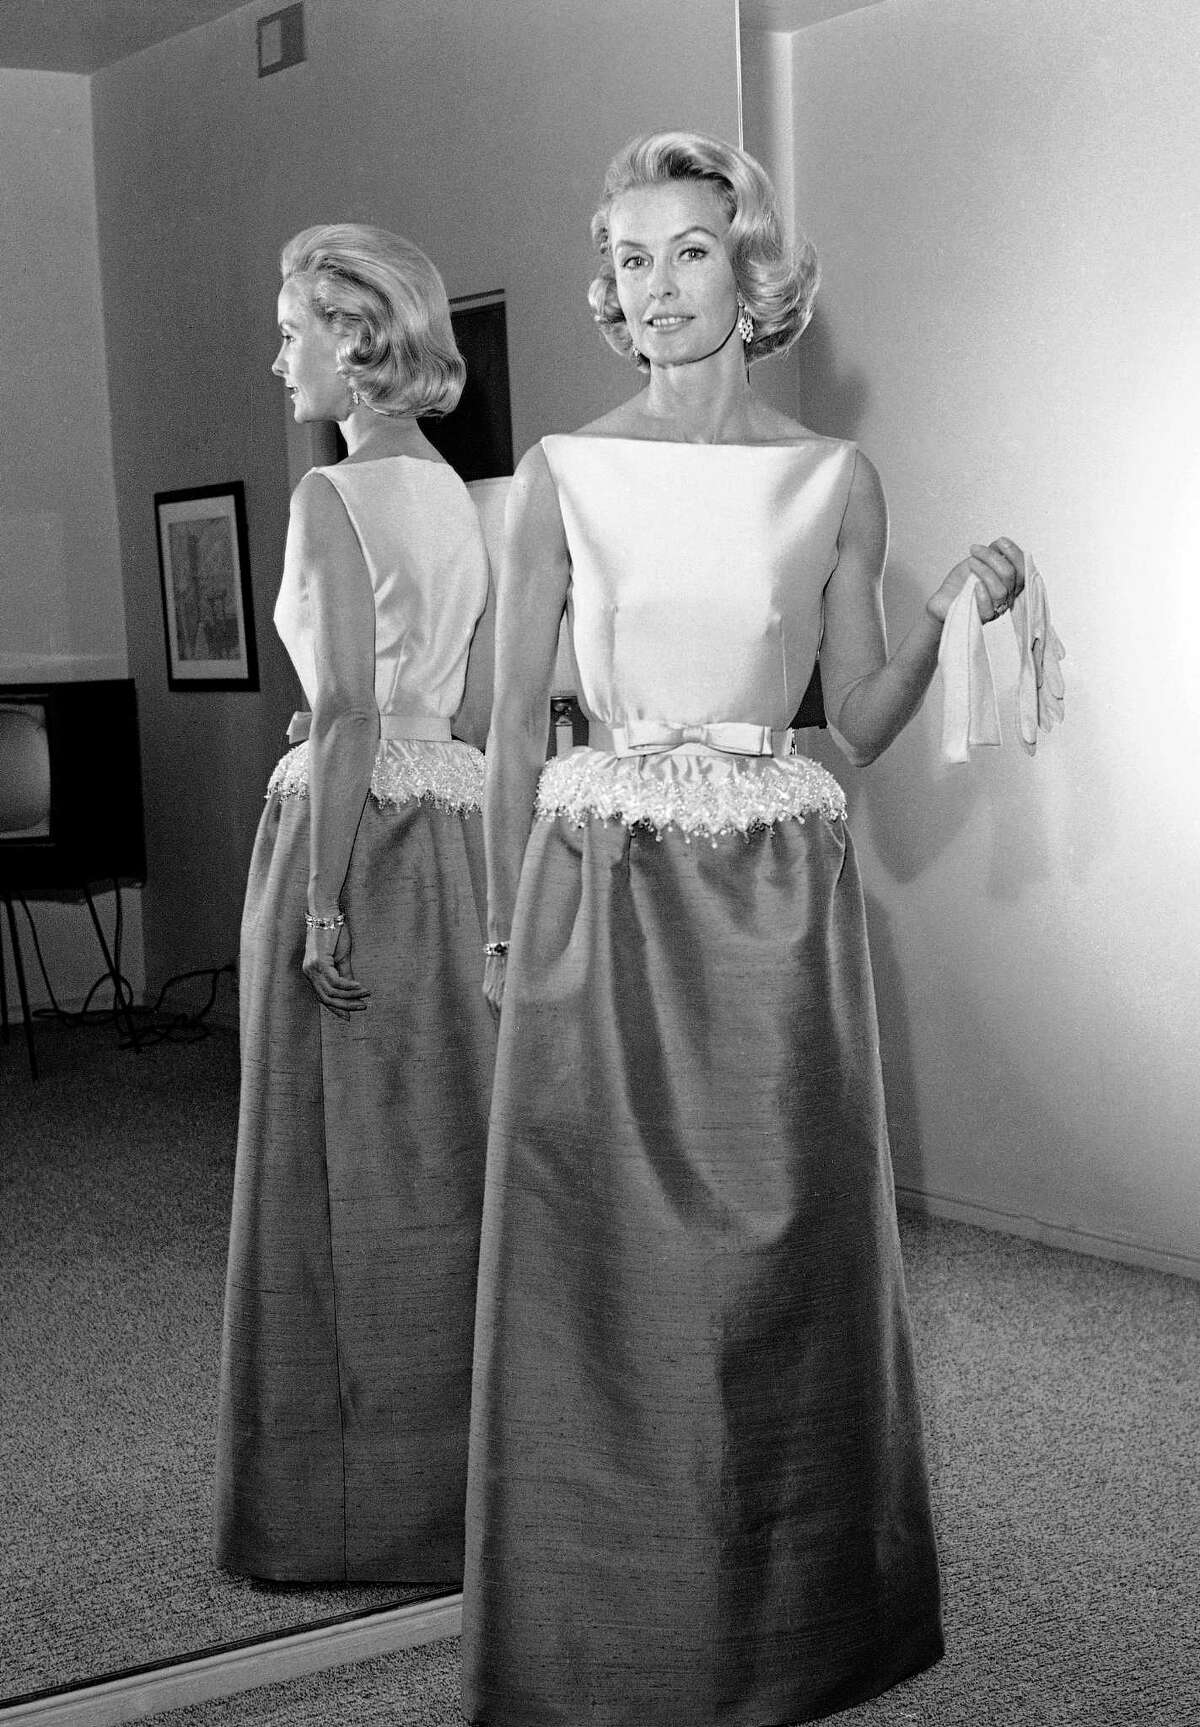 In this April 6, 1962, file photo, socialite-actress Dina Merrill models the gown she will wear at the Academy Awards presentation in Los Angeles. Merrill, the rebellious heiress who defied her super-rich parents to become an actress, died Monday, May 22, 2017, at age 93.